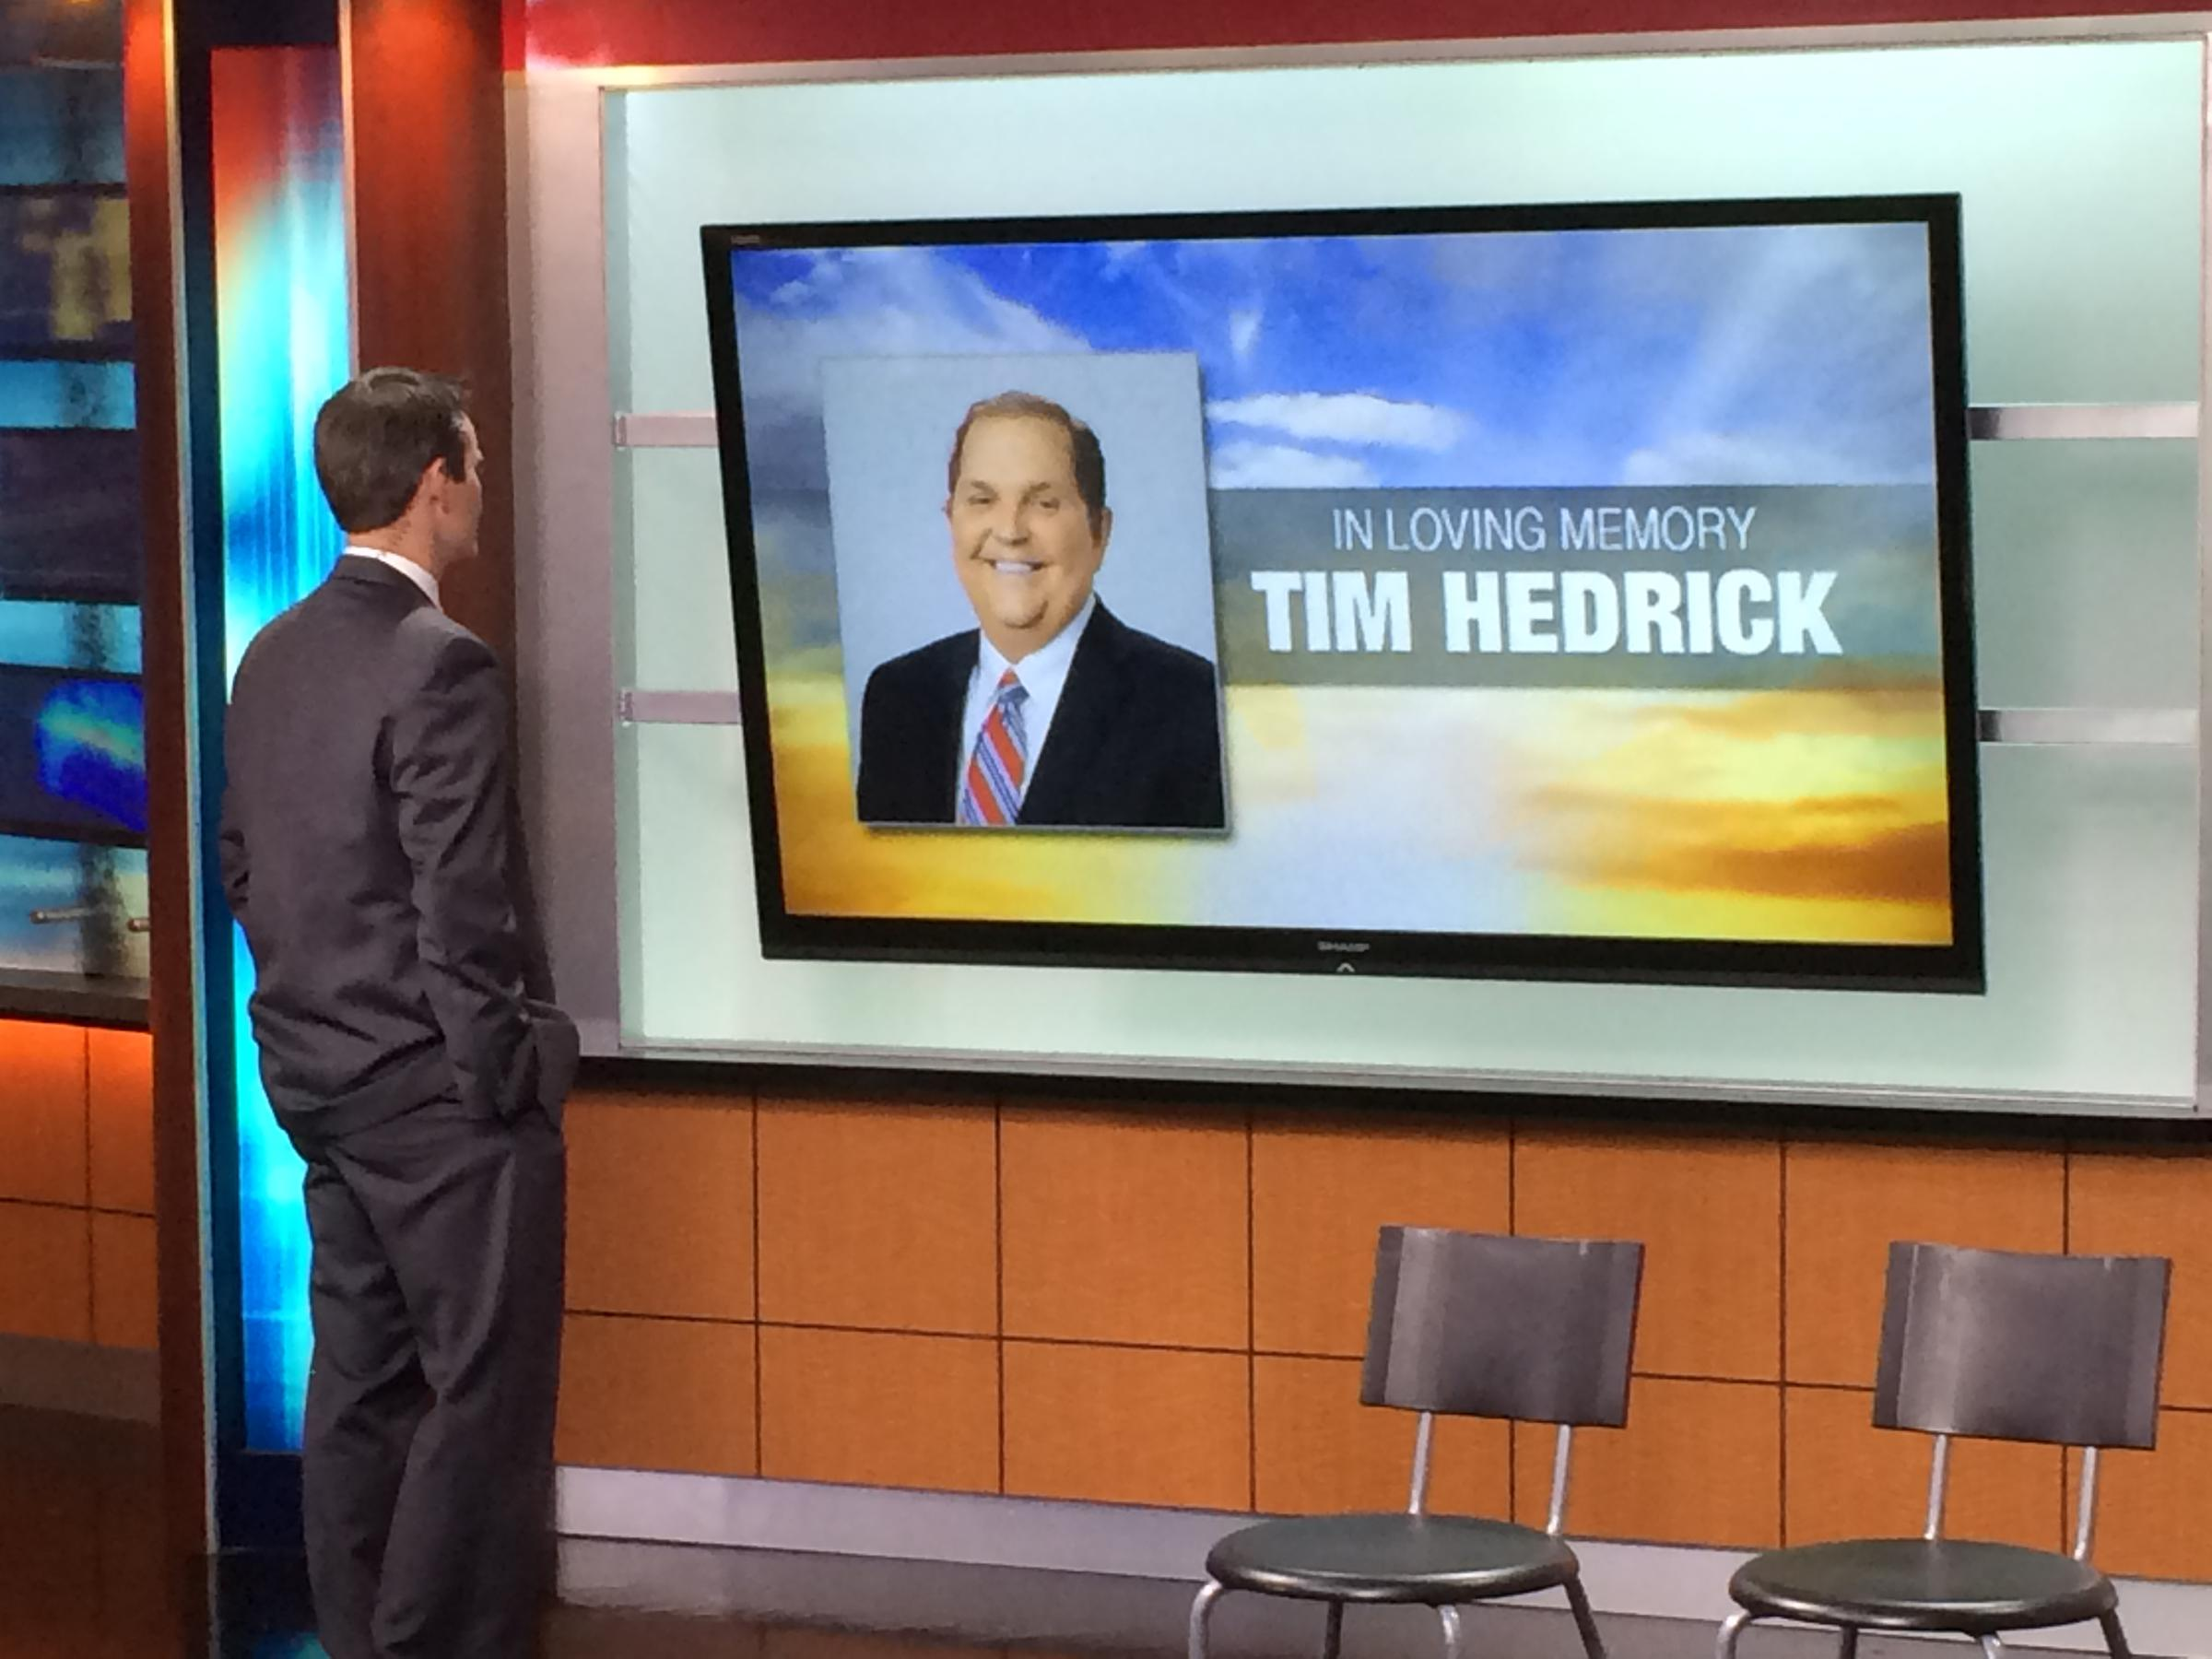 my first interview tim hedrick in 1988 wvxu bob herzog remembering his friend and coworker tim hedrick